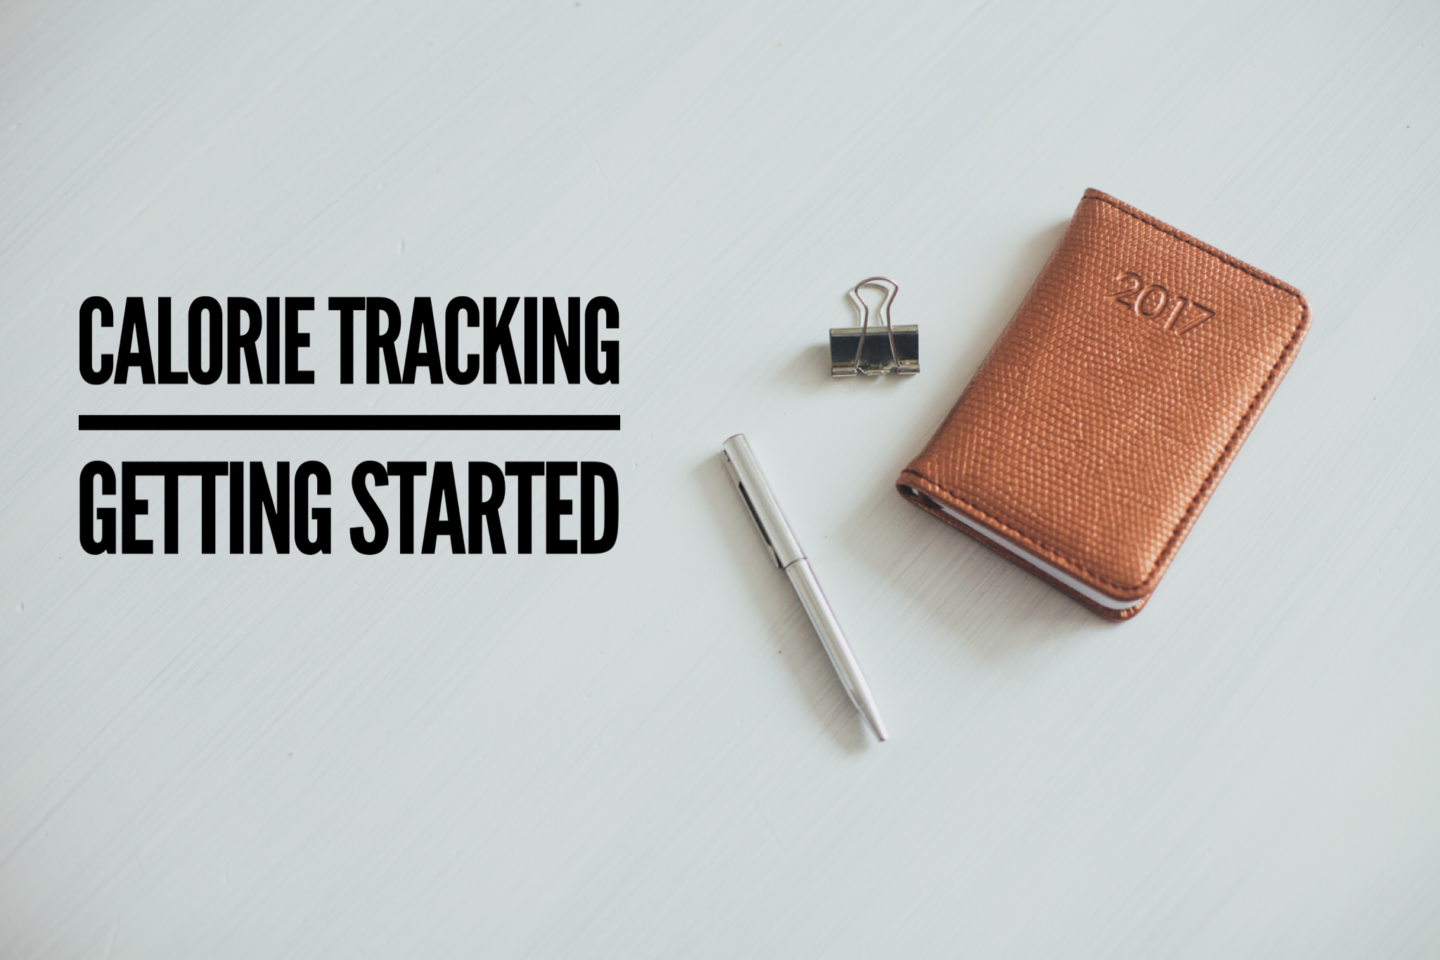 Calorie tracking tips #No.1 – Getting started